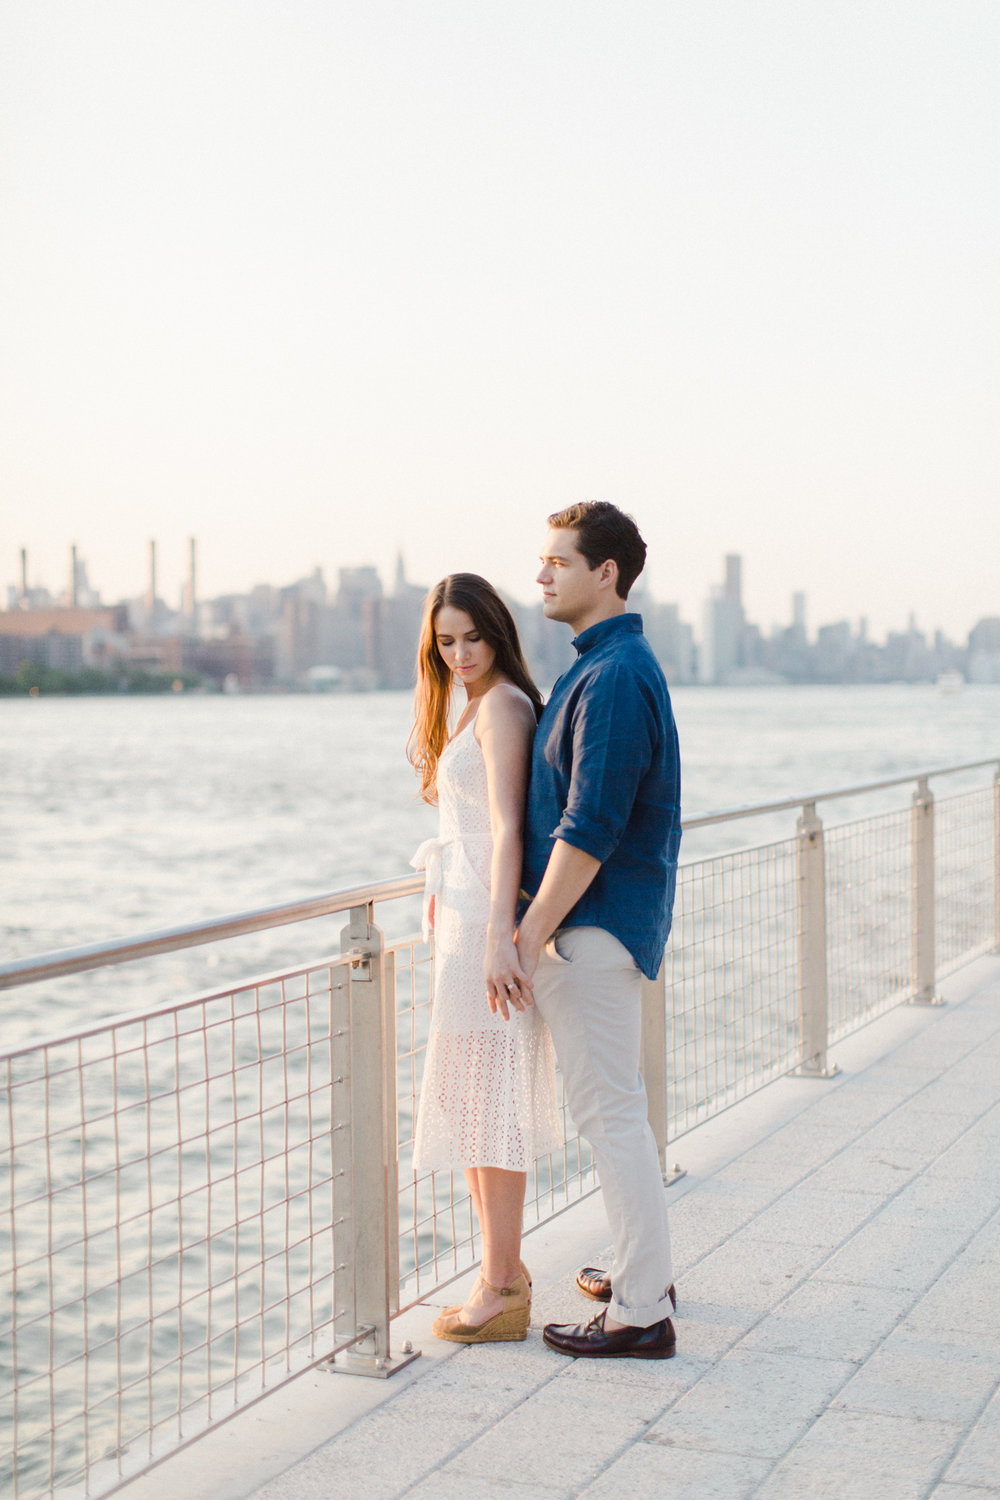 NYC-engagement-Photos-Photographer-Wedding-06.jpg